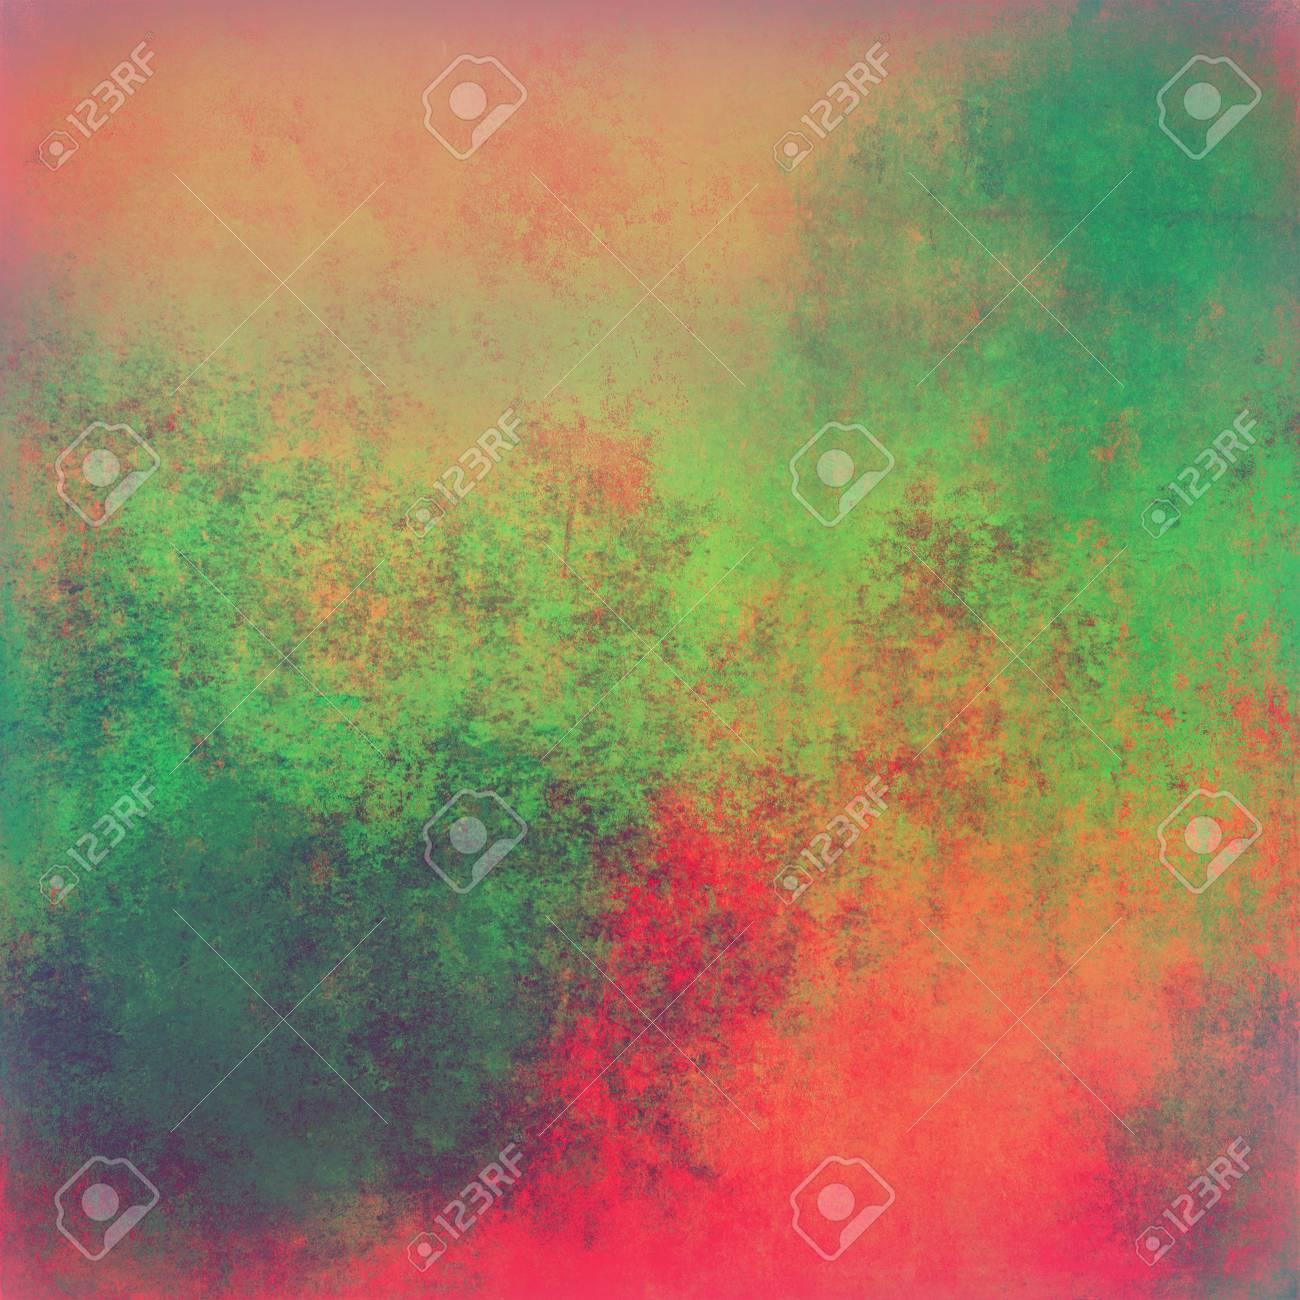 Multicolored abstract vintage background Stock Photo - 23100874